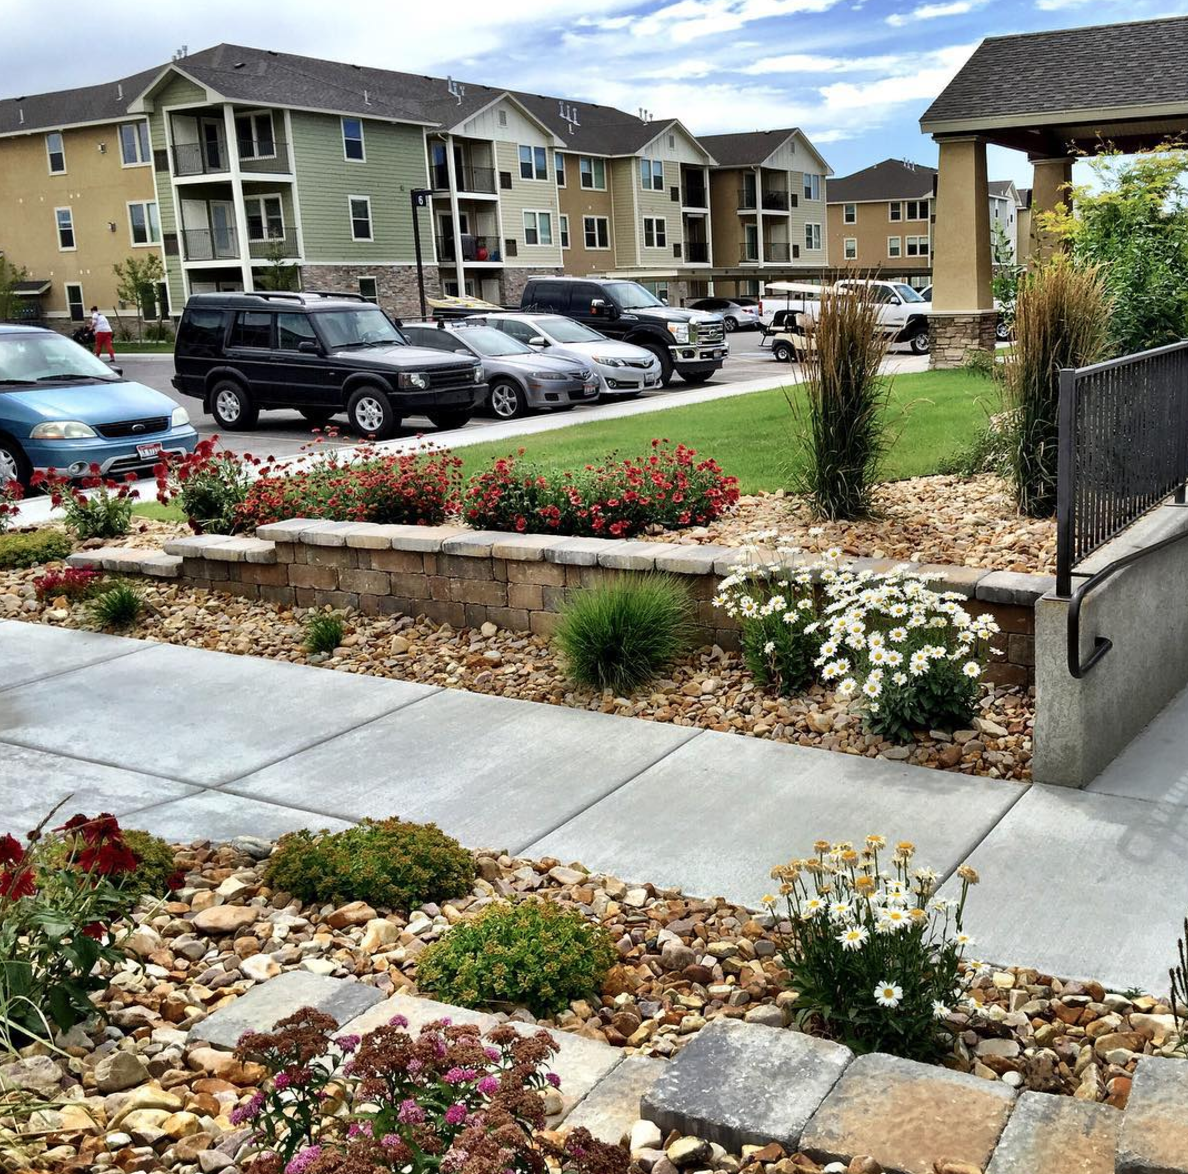 Apartment Building Landscaping Ideas landscaping ideas for apartment buildings (to increase occupancy